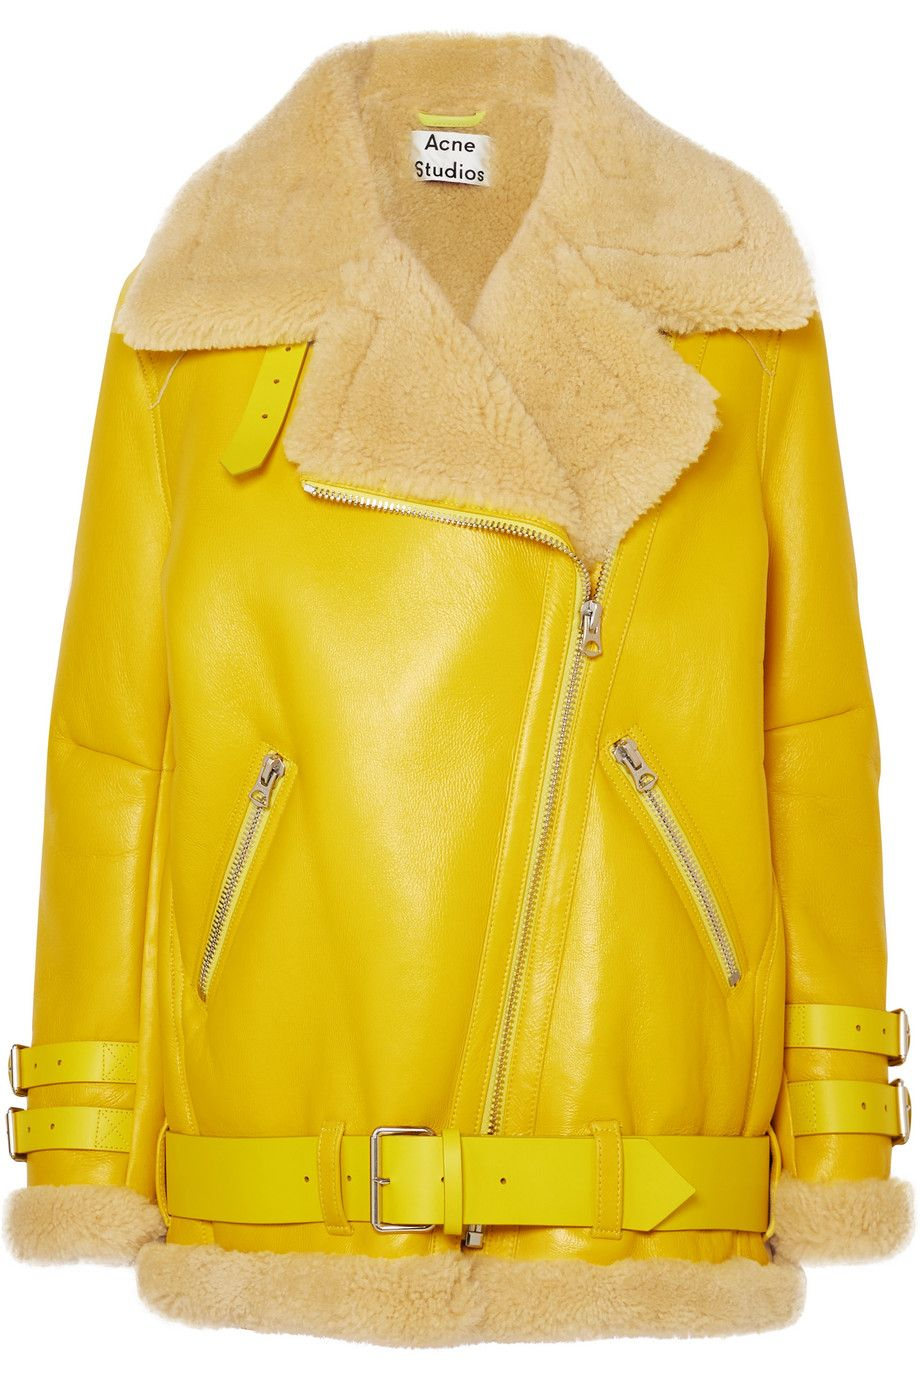 acne-studios-velocite-shearling-trimmed-leather-biker-jacket-bright-yellow